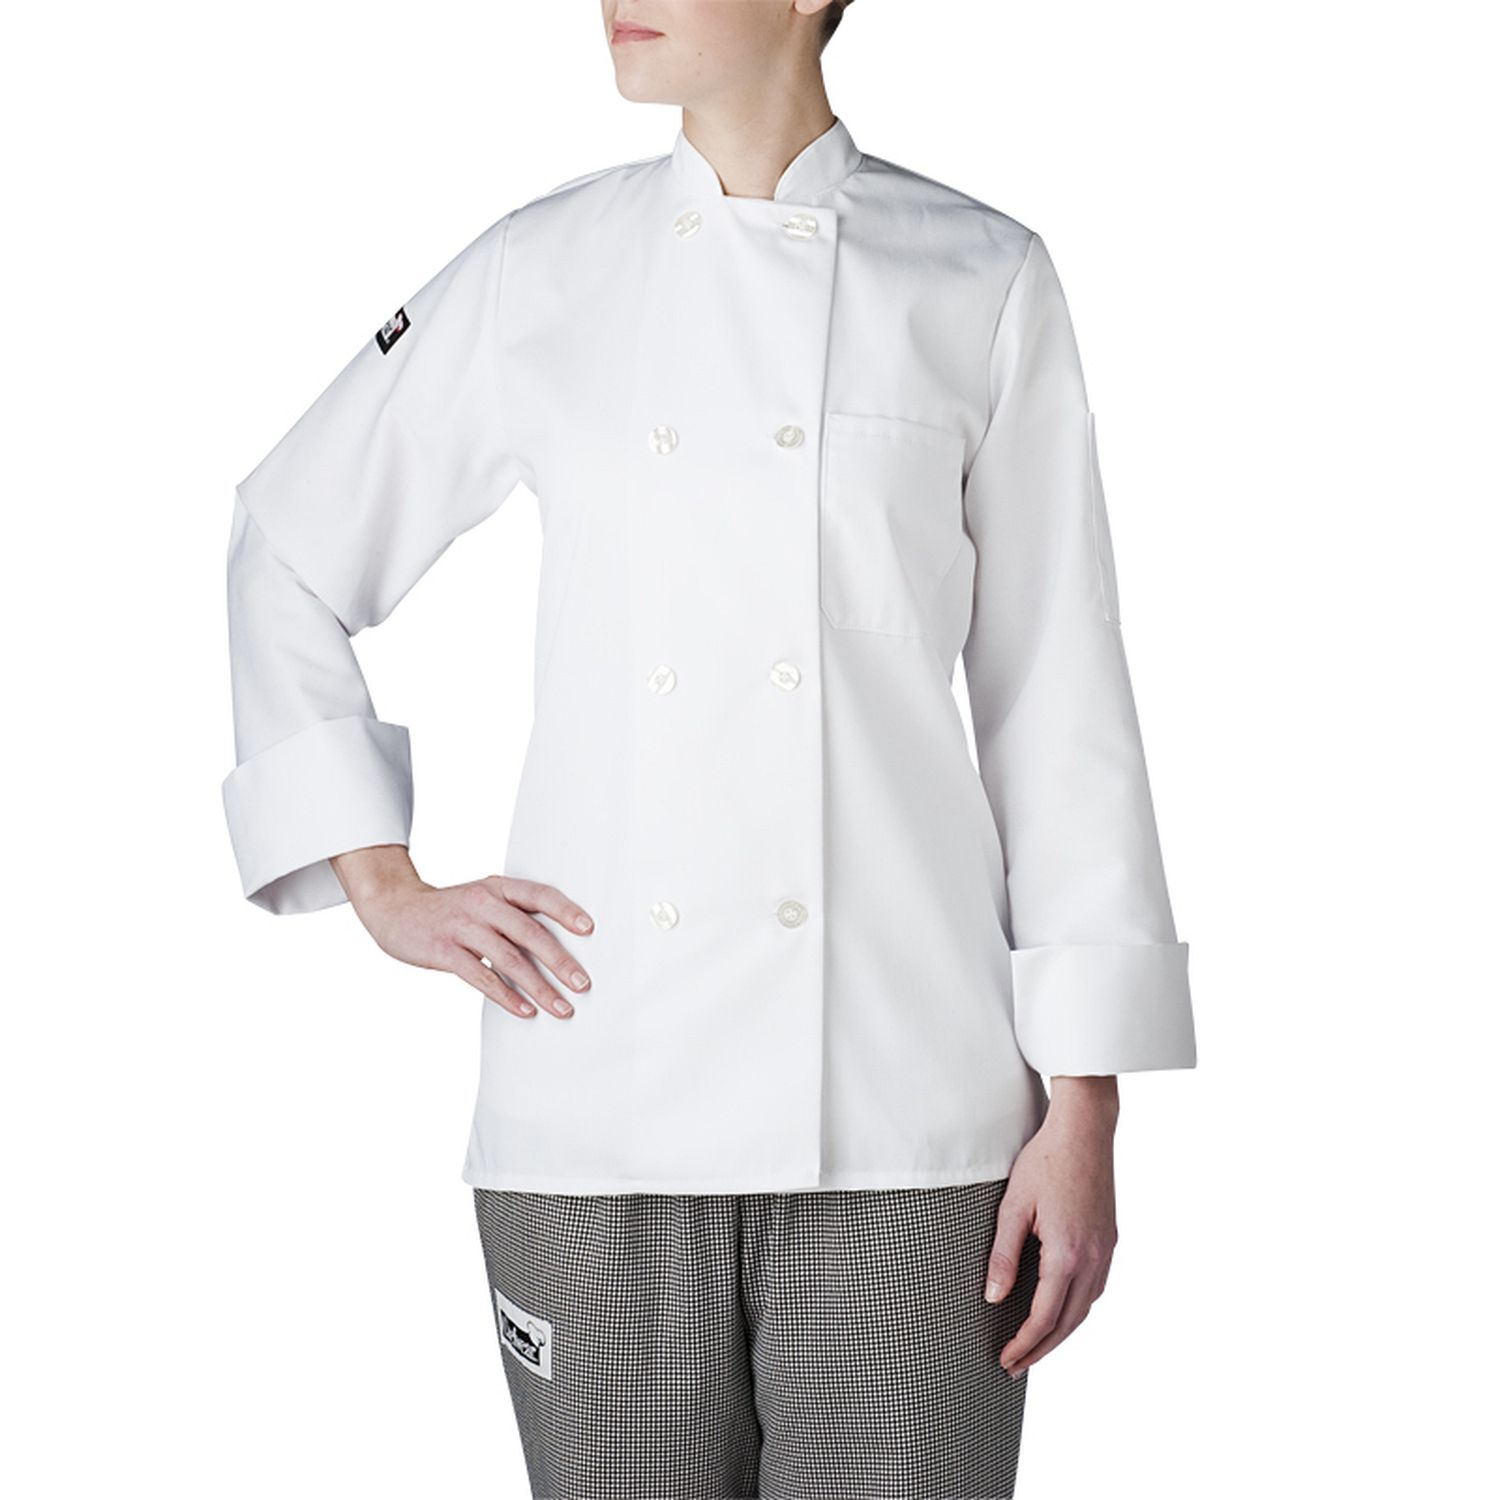 women u0026 39 s long sleeve primary plastic button chef jacket